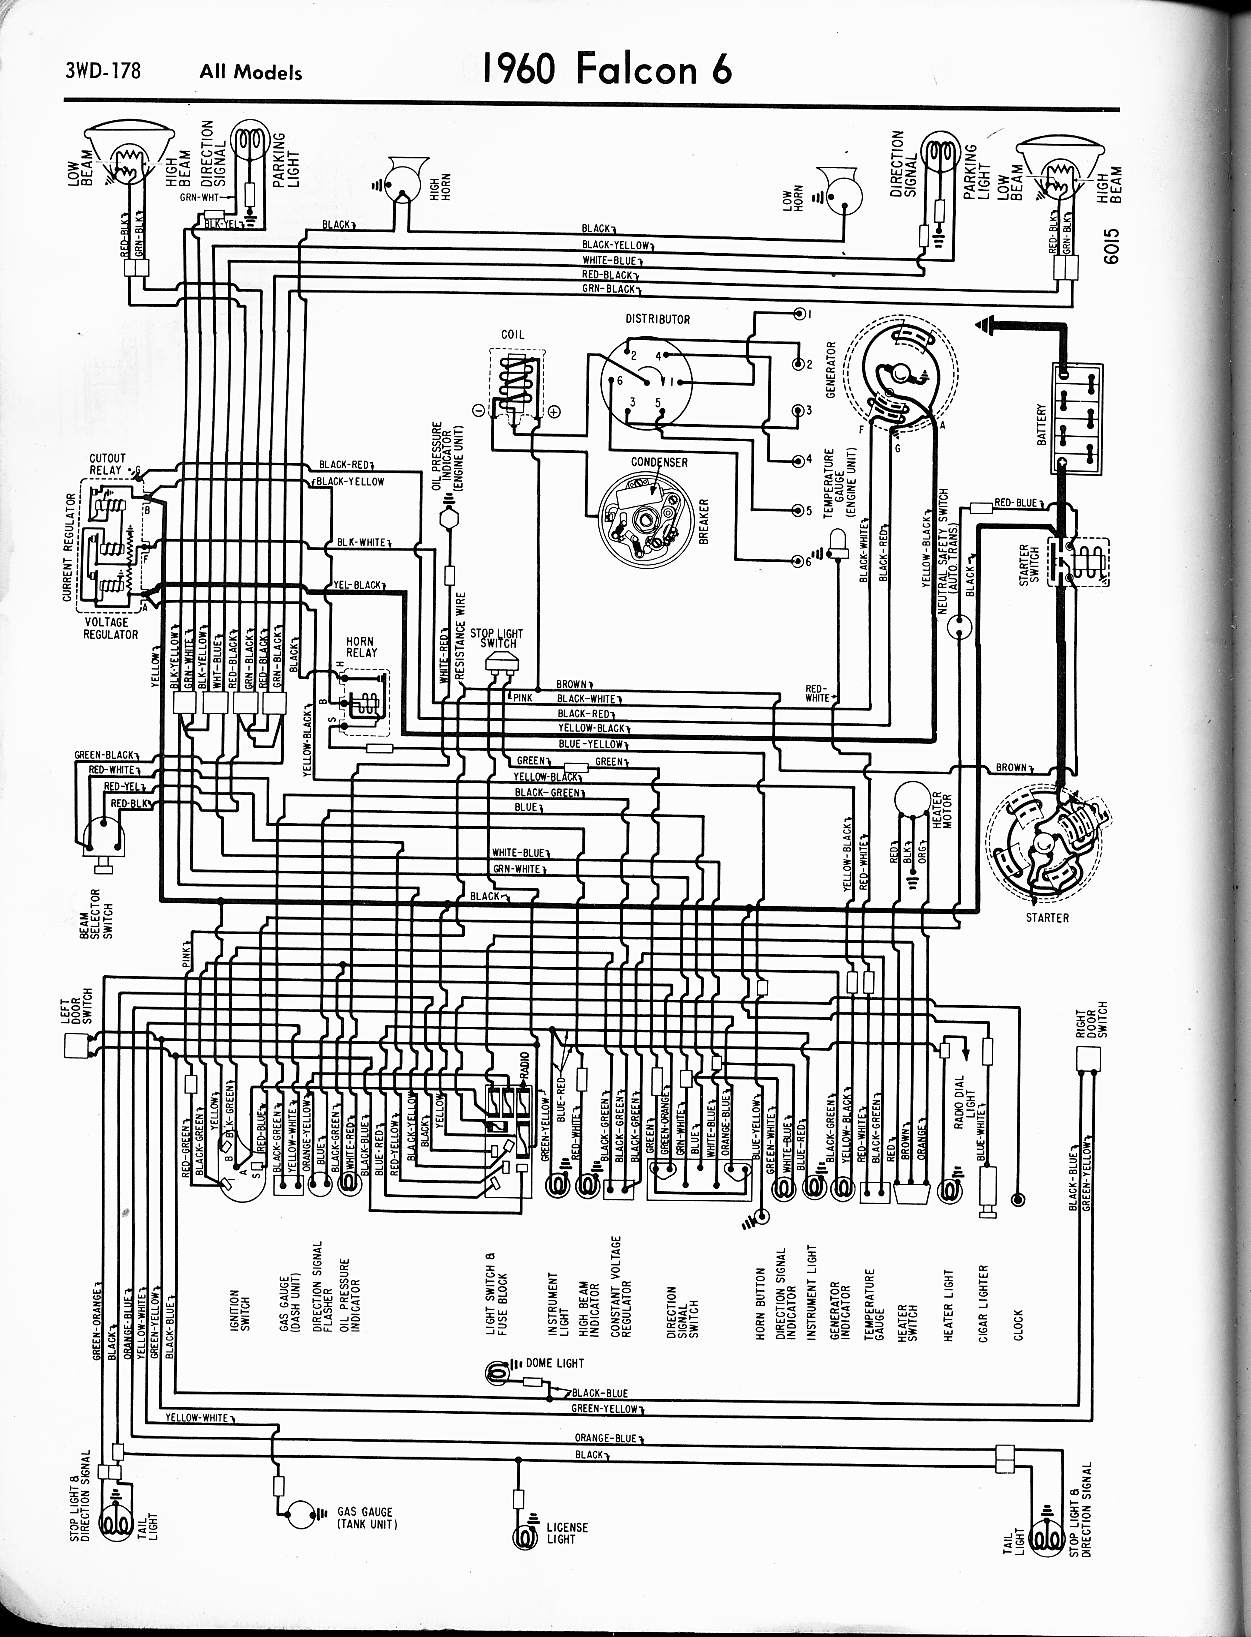 1966 Thunderbird Wiring Diagram Reveolution Of Ford Auto Diagrams 1965 Window Great Design Rh Homewerk Co Convertible